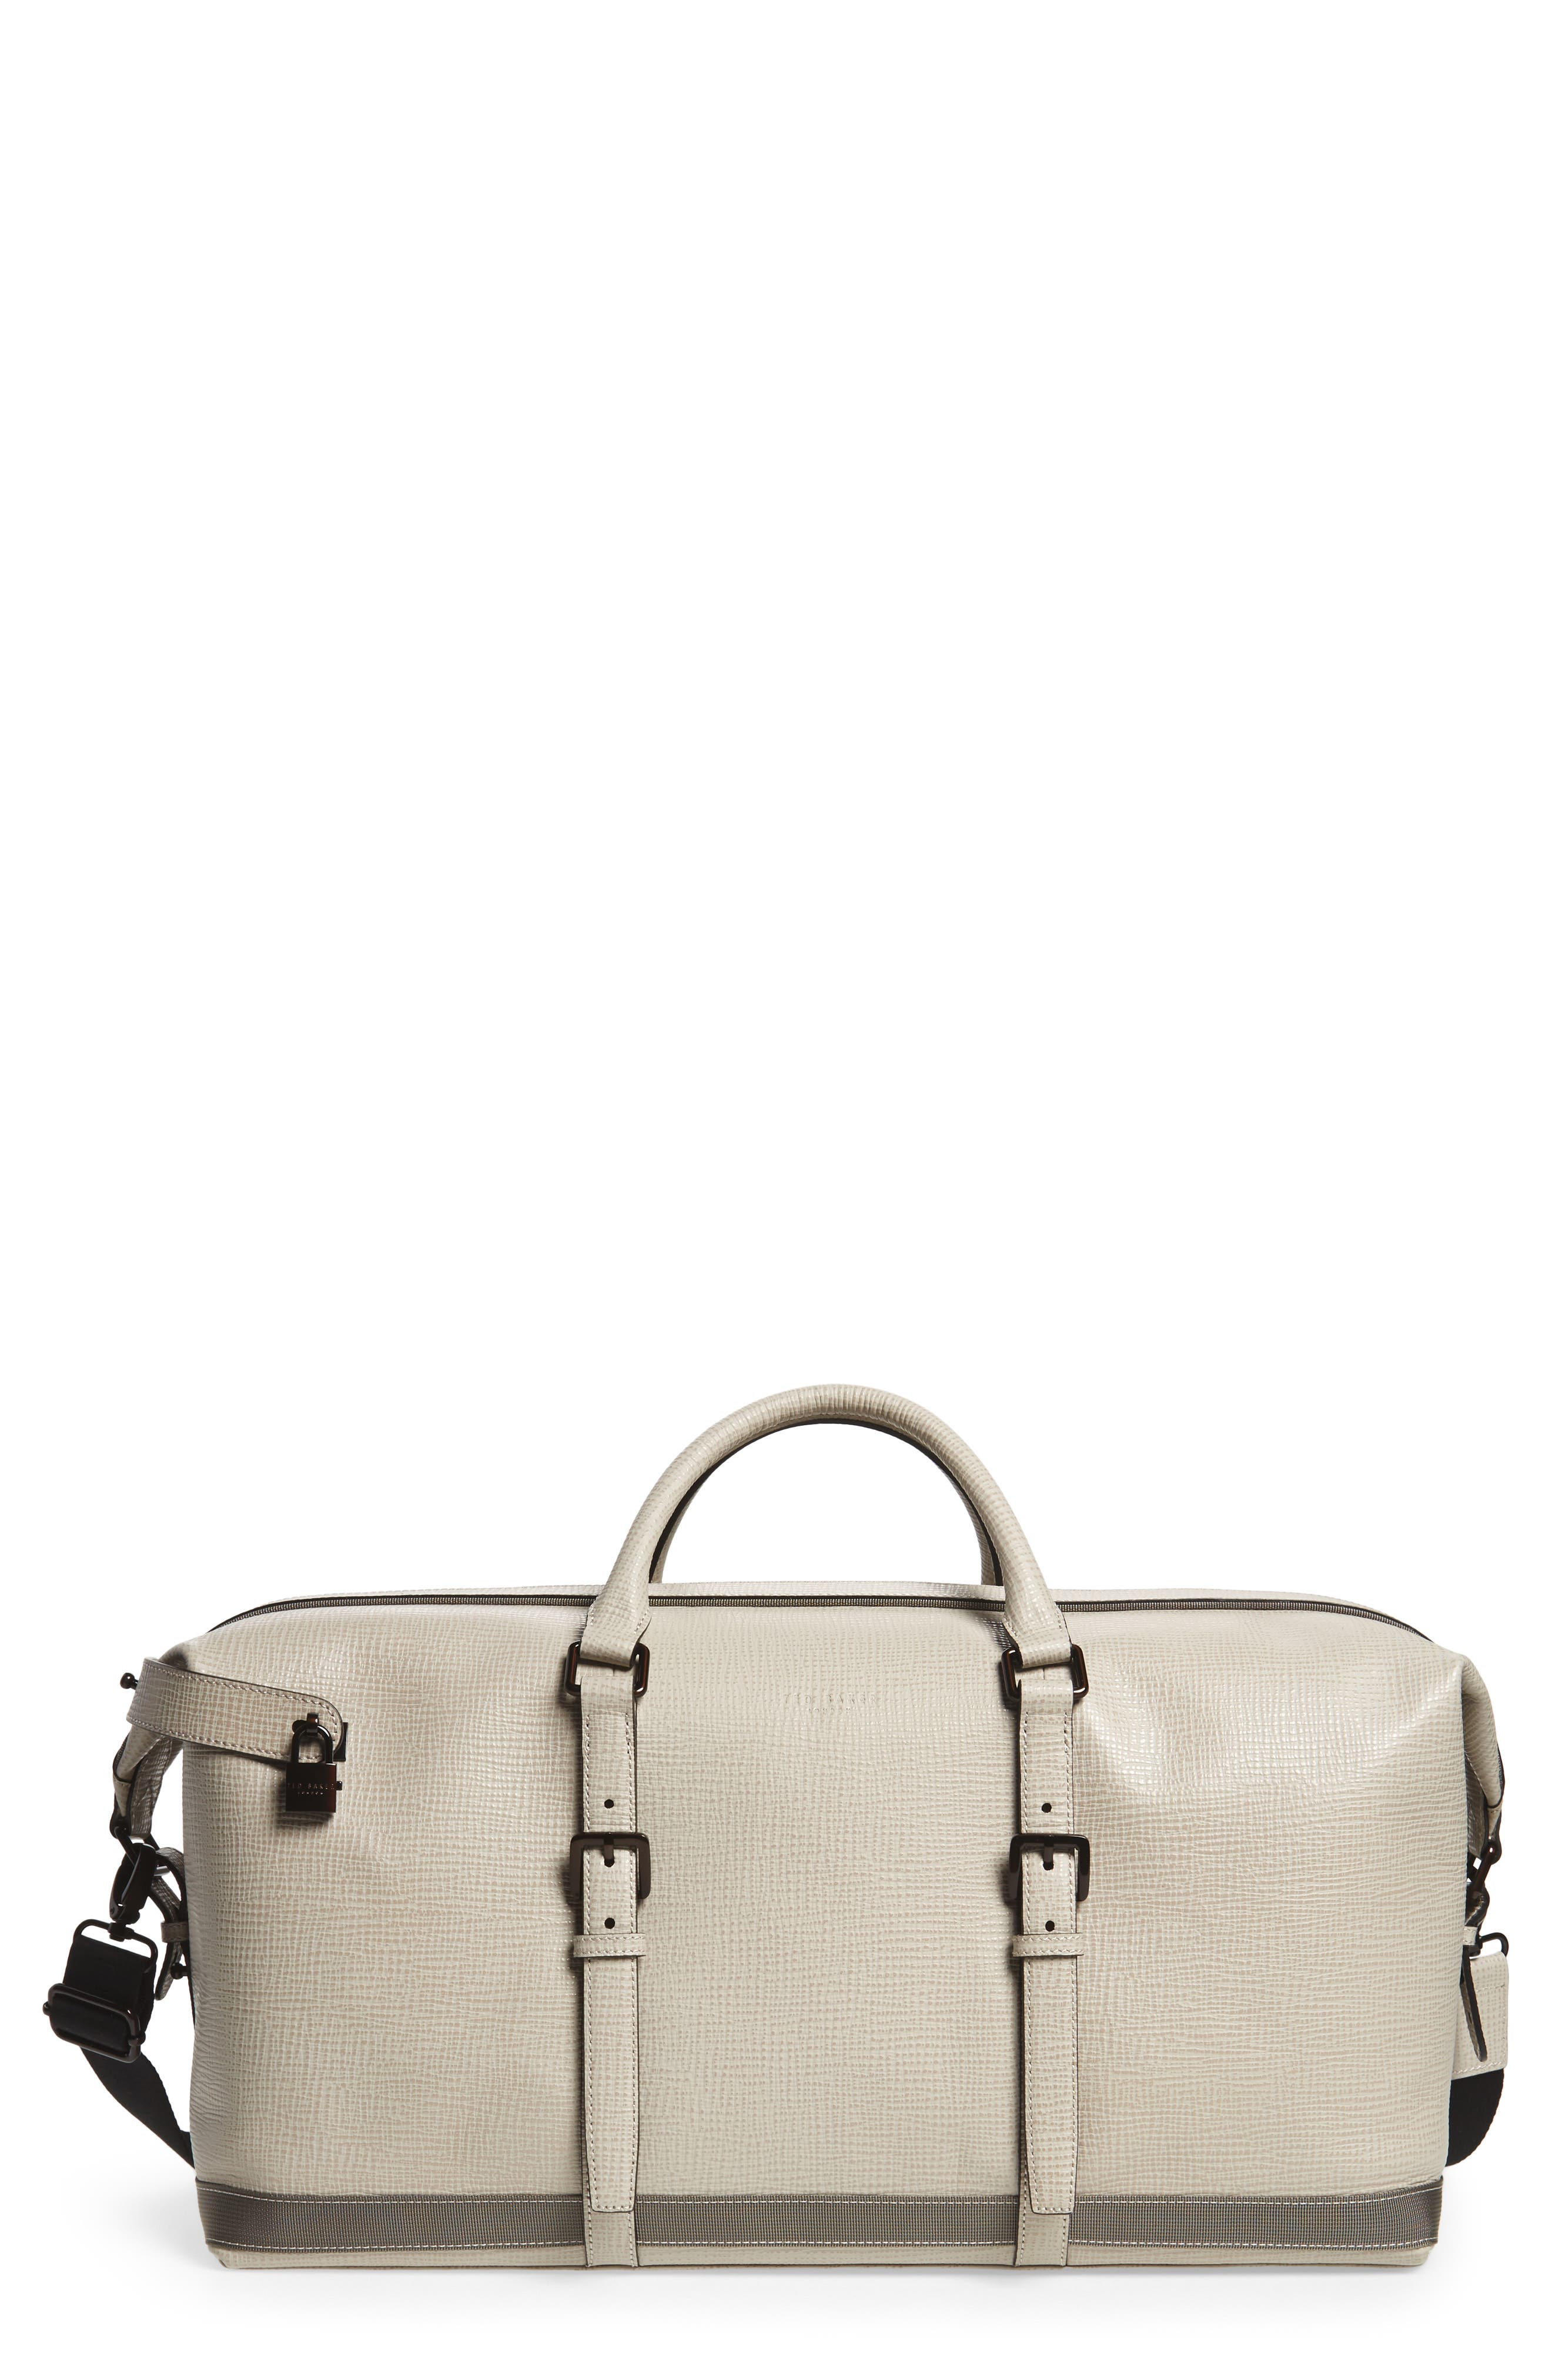 Ragmar Palmelato Holdall Duffel Bag,                         Main,                         color, NATURAL